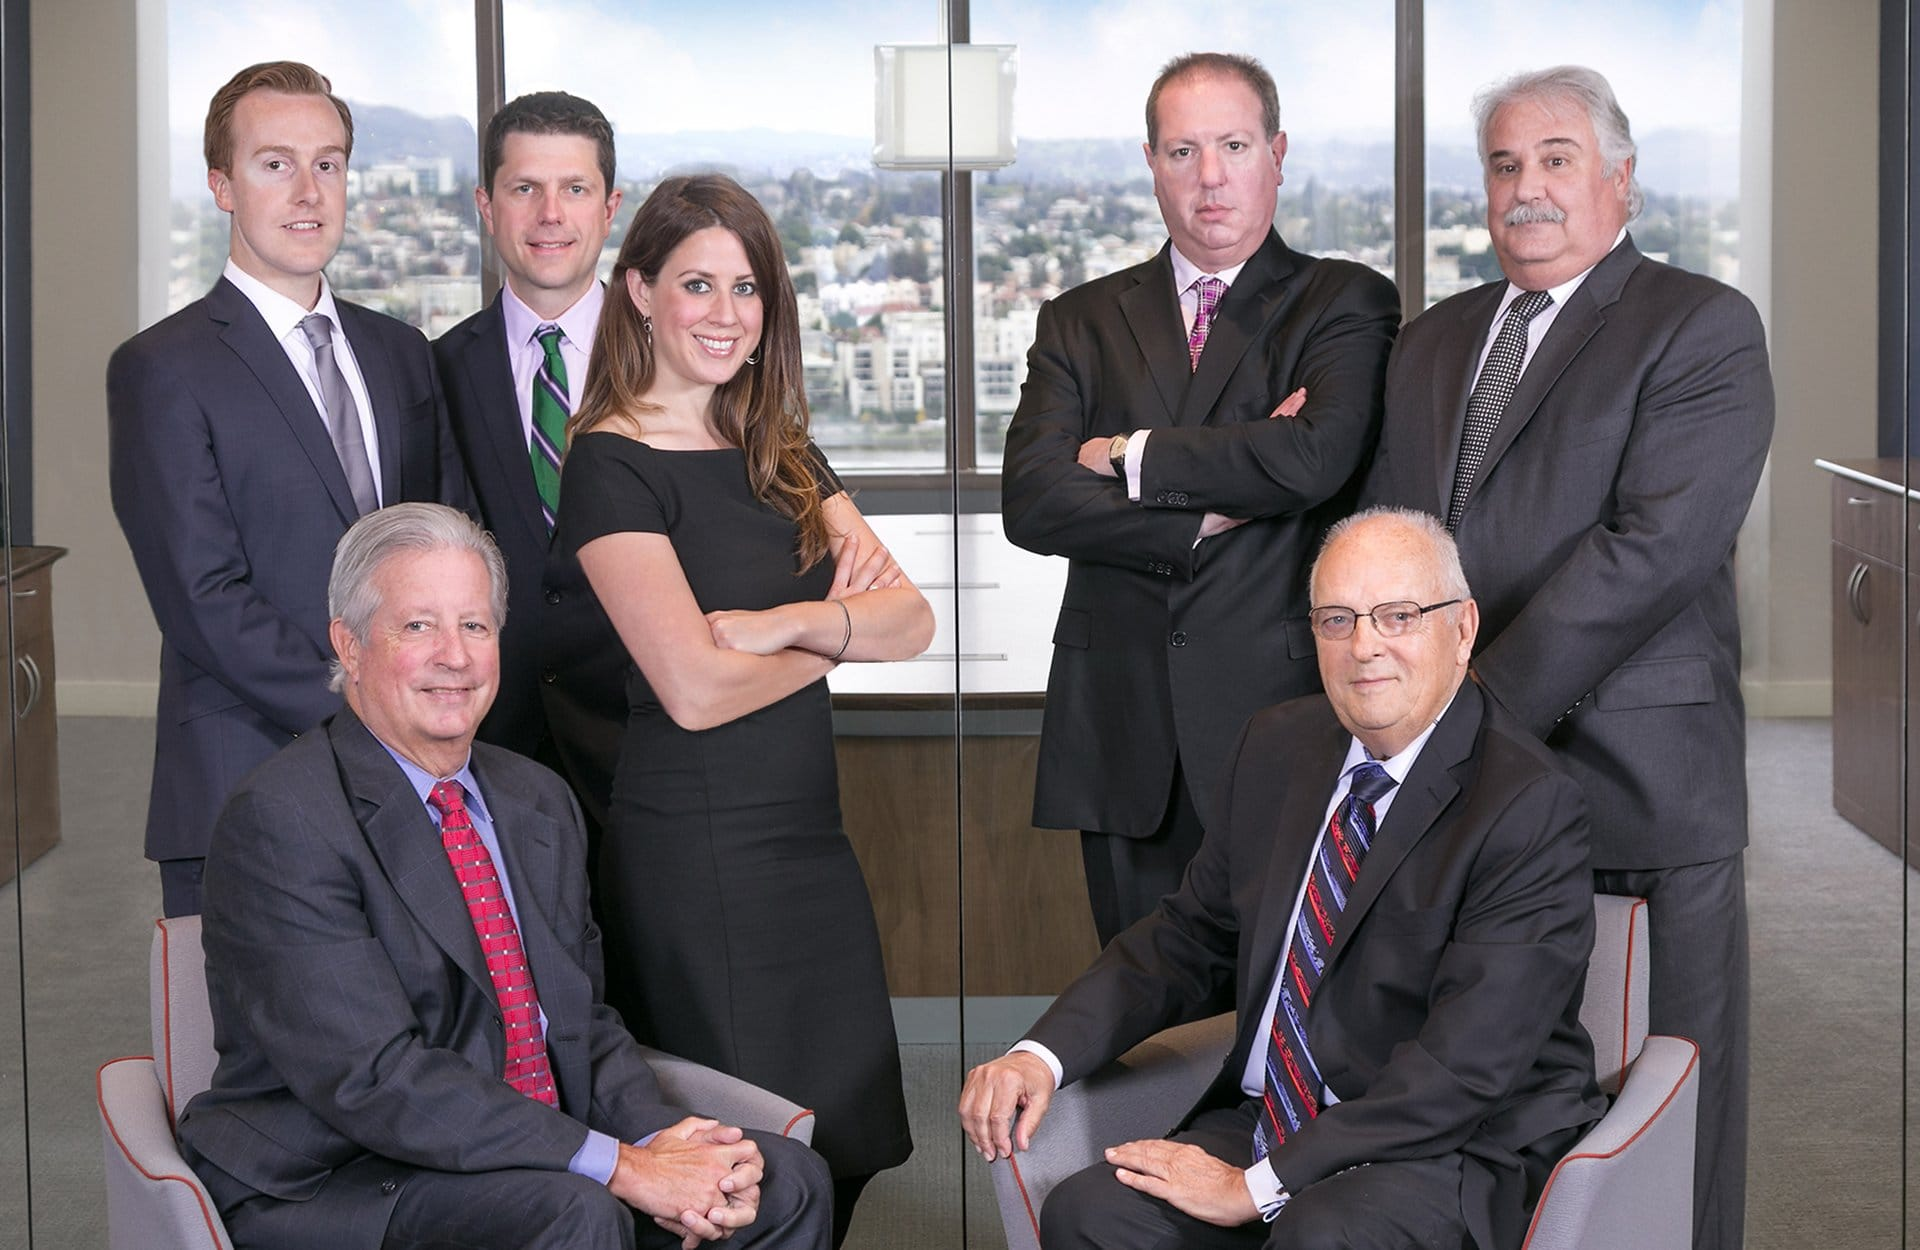 Home | Oakland Employment Law Attorneys